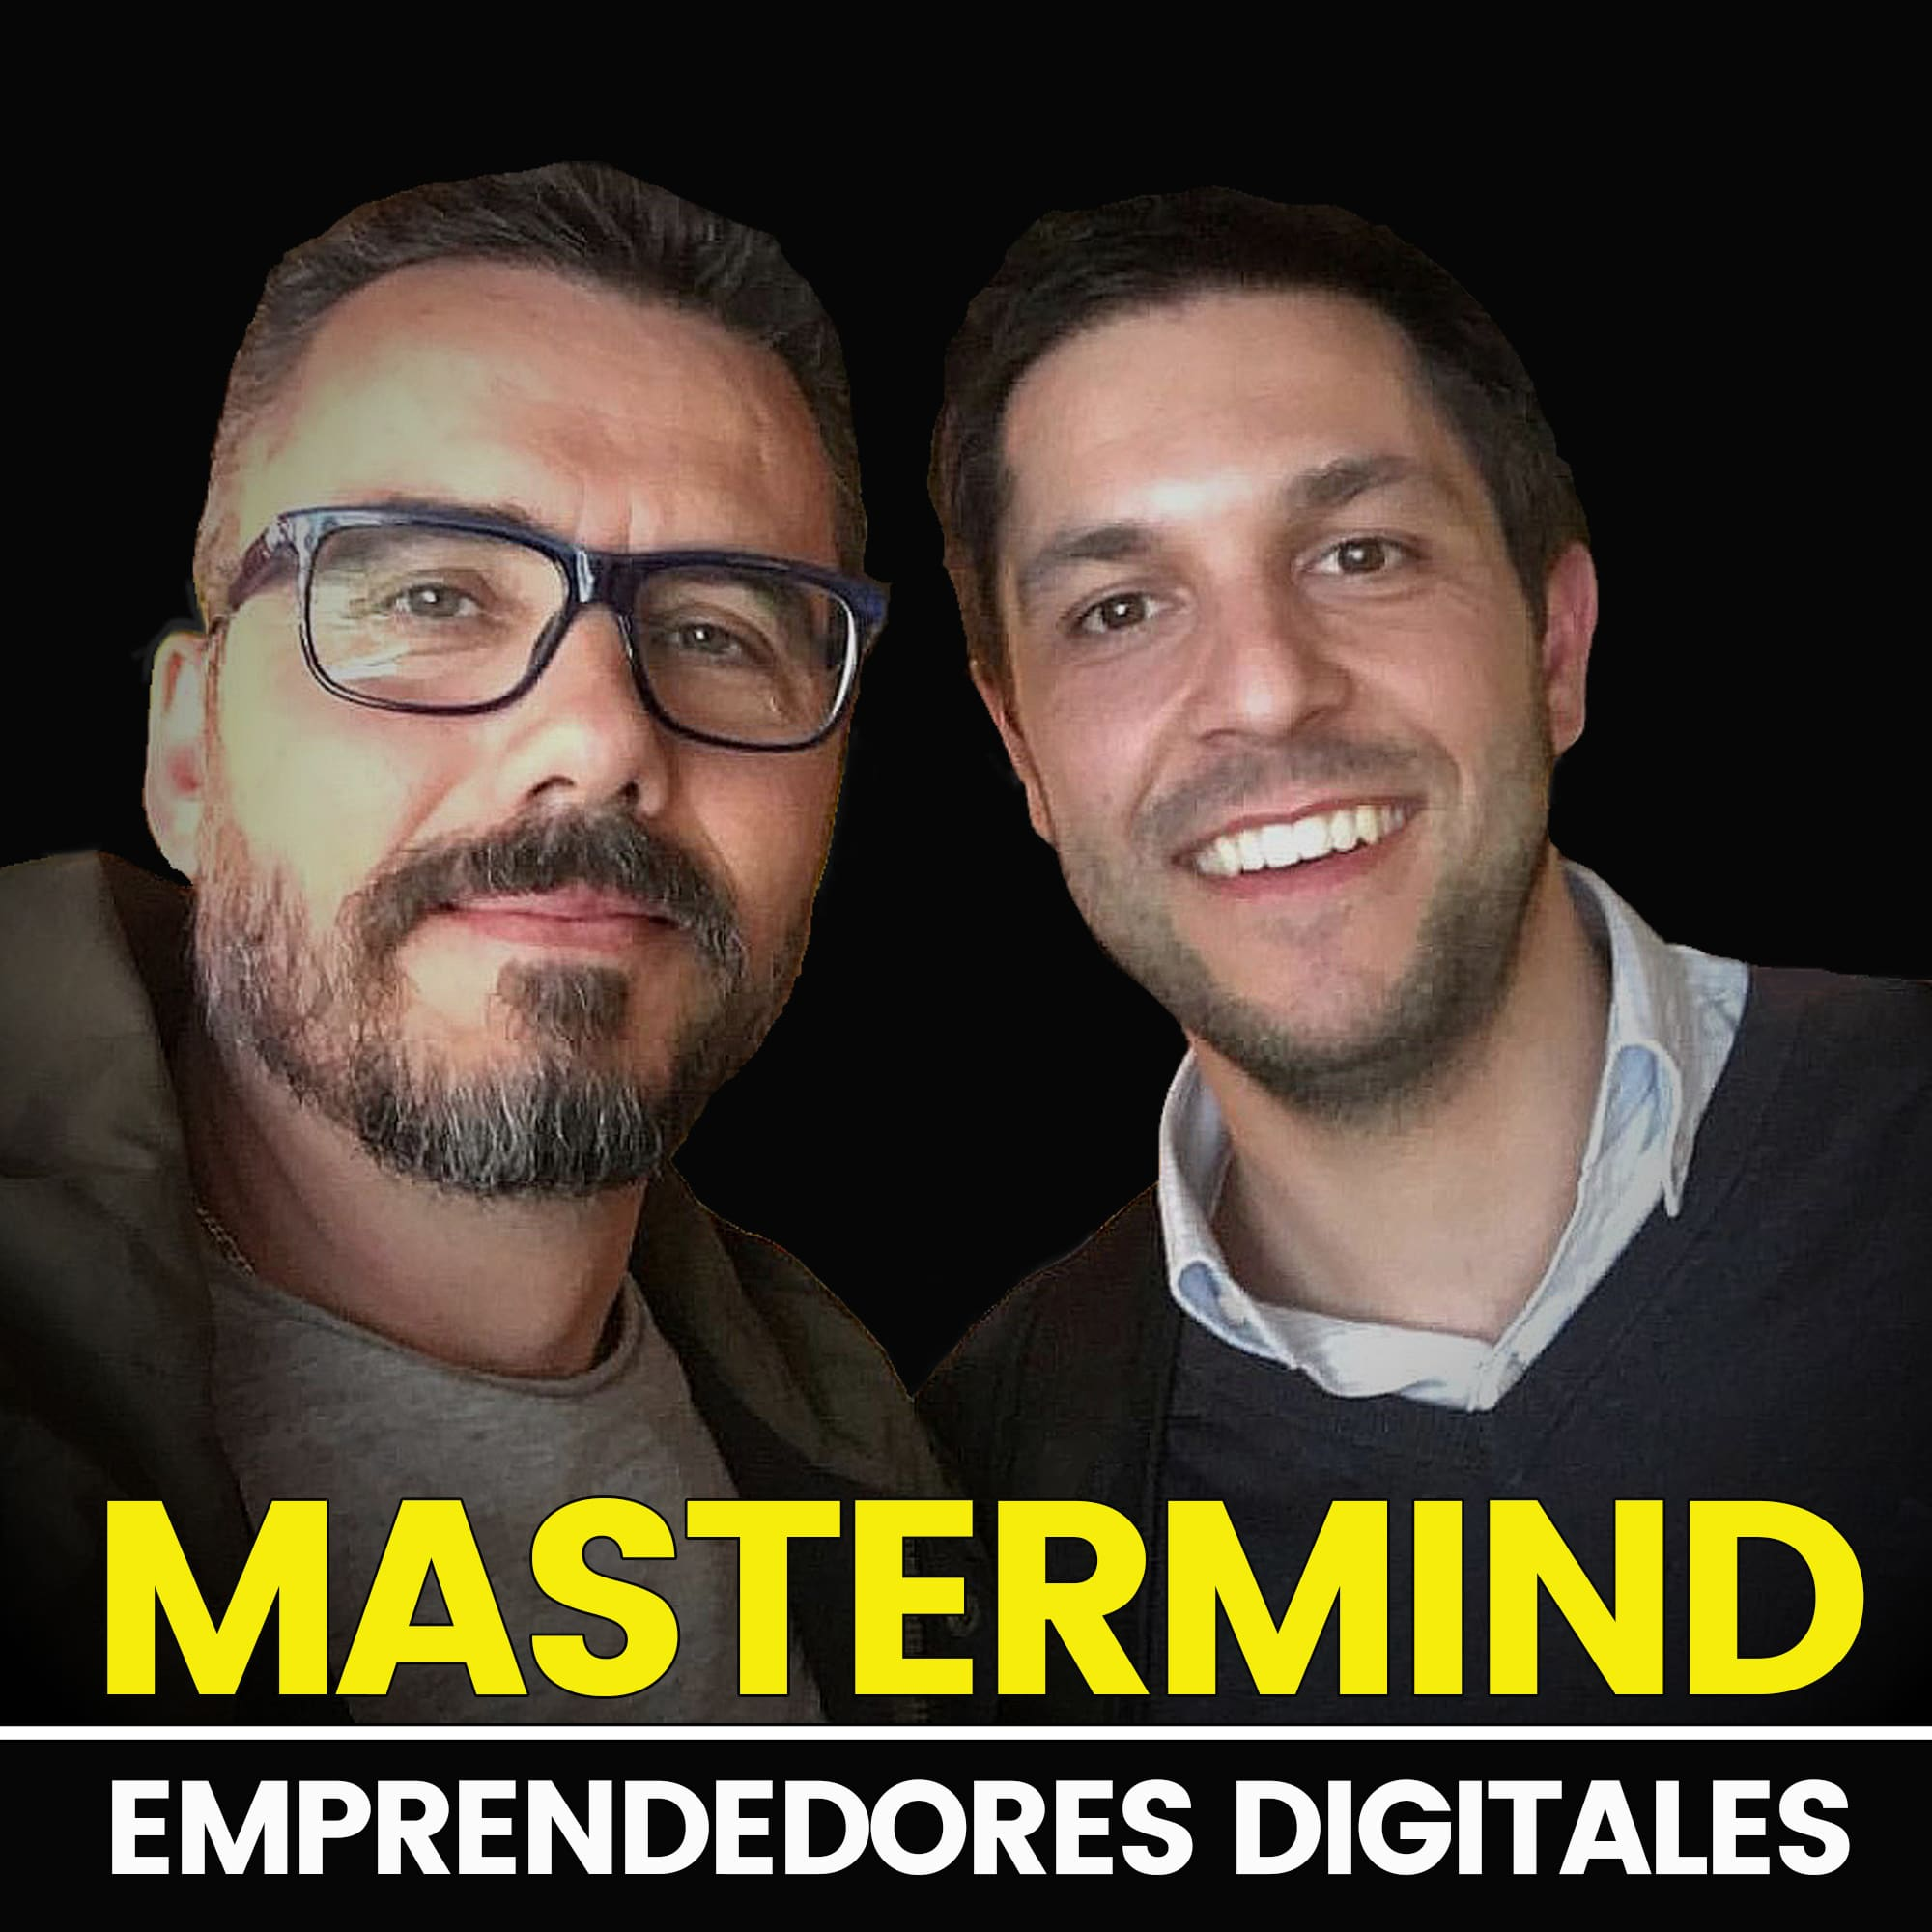 31: Vendehúmos en el marketing online